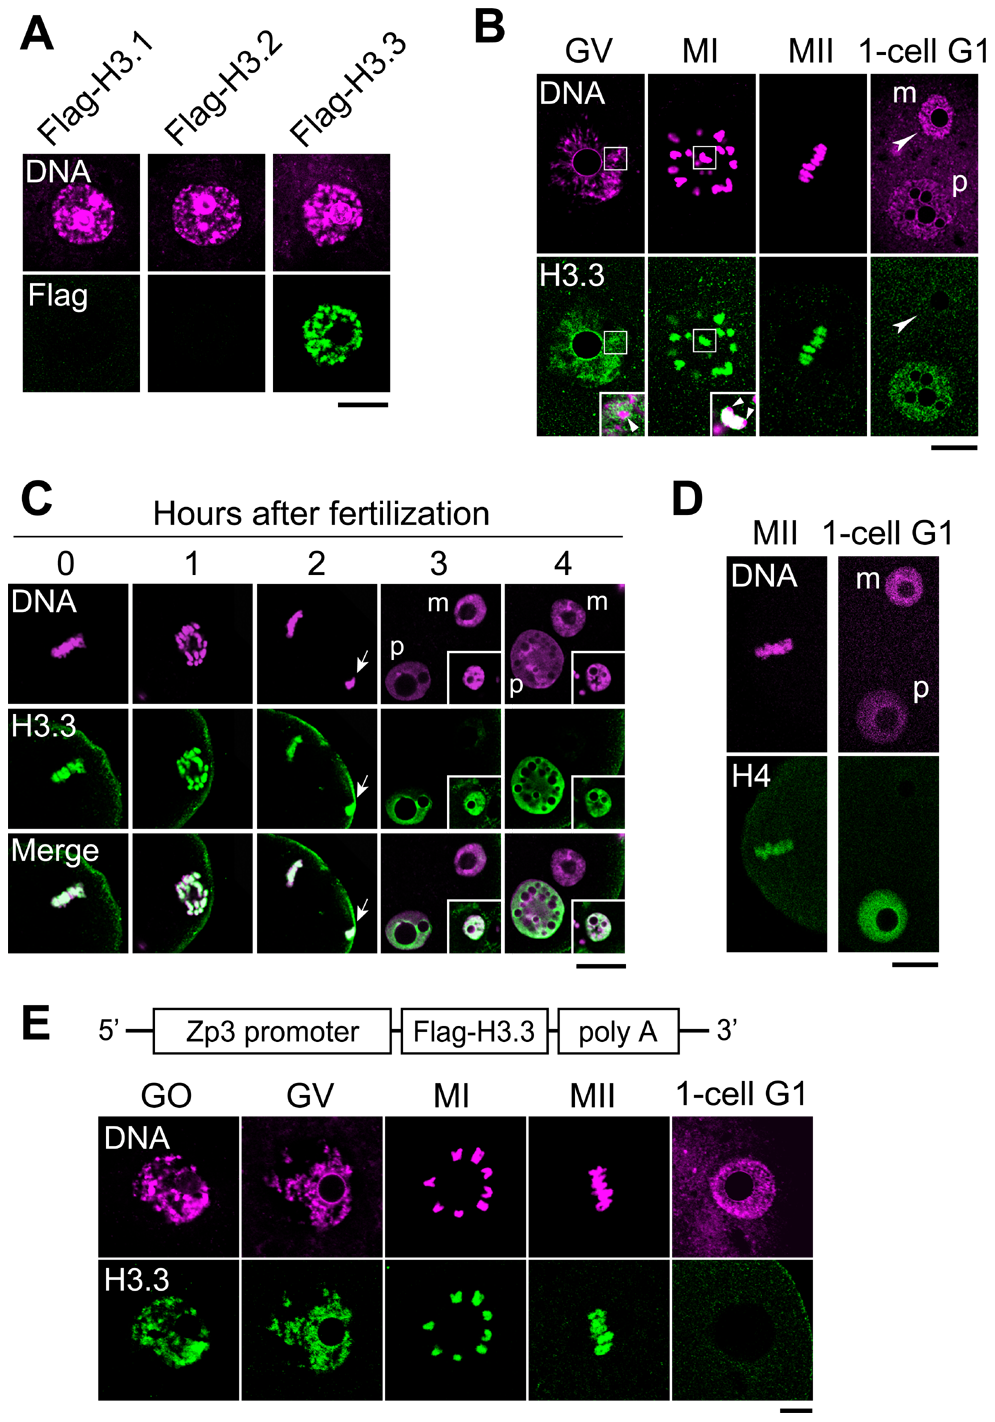 H3.3 disappears from the oocyte genome immediately after fertilization.